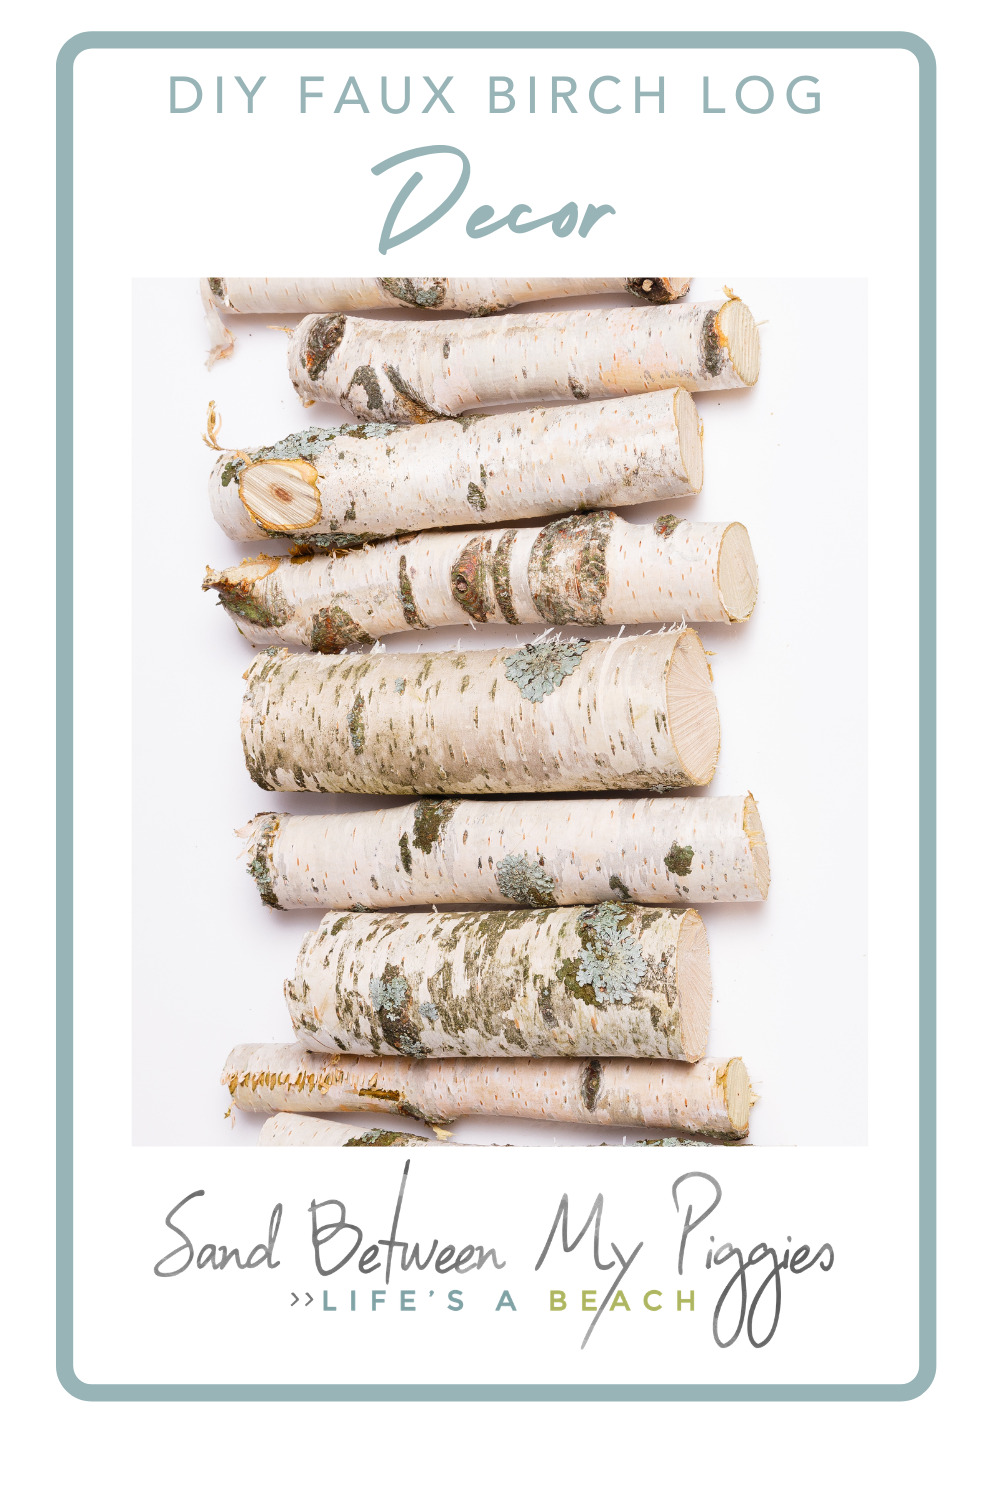 Sandbetweenmypiggies.com is loaded with  fun and easy DIY projects that will look great in your home! Avoid the mess of real wood and get the same cozy feeling with these DIY faux birch logs!